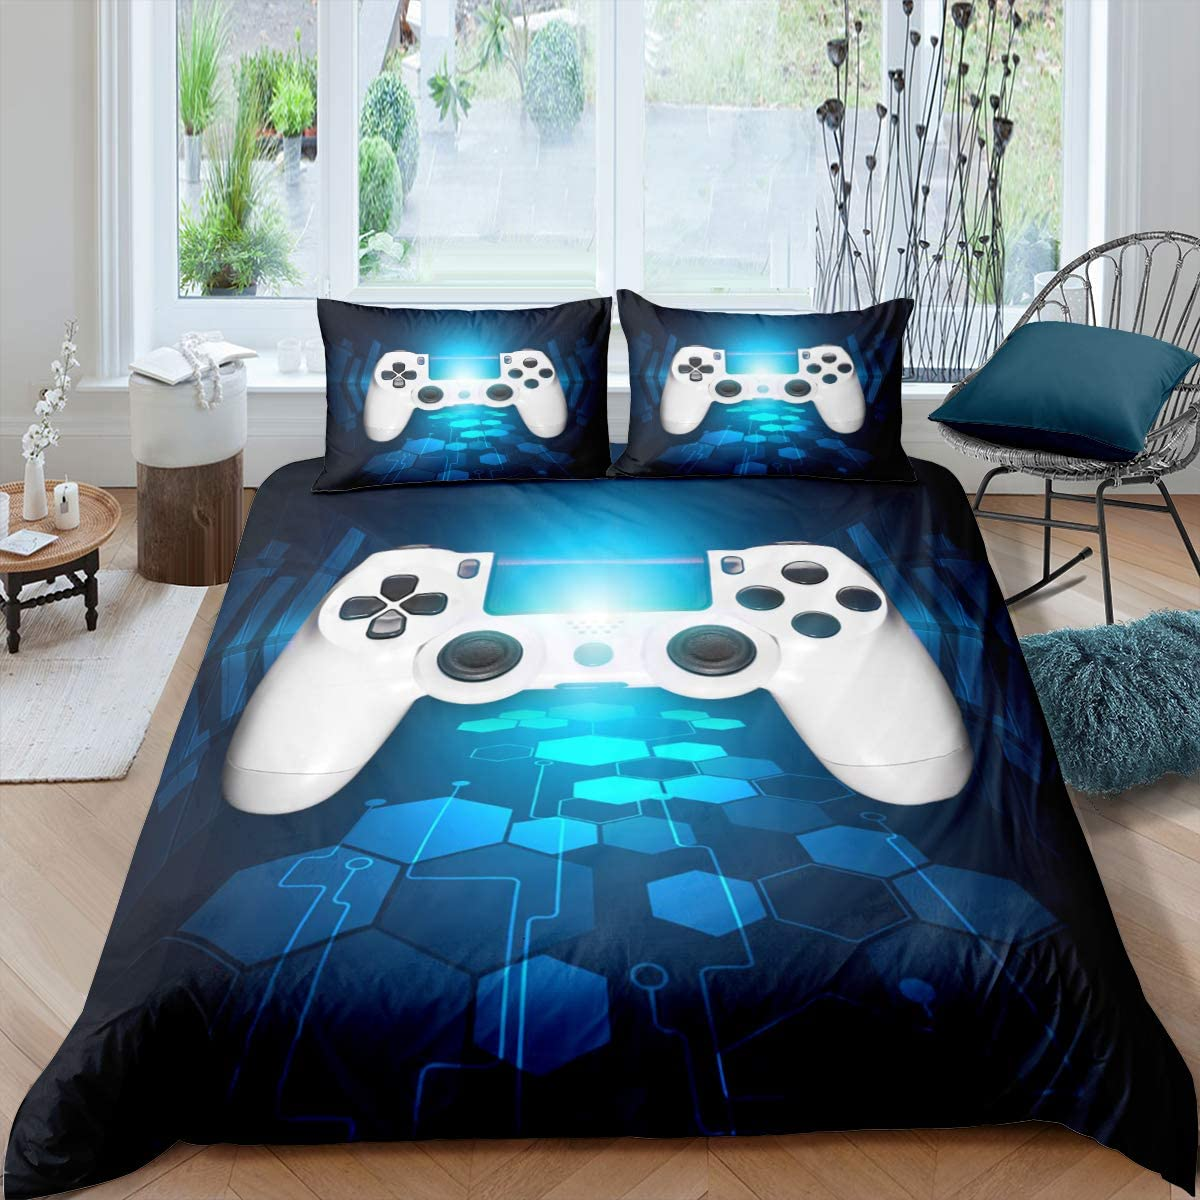 Gamer Bedding Set for Boys Youth Teens King Size Modern Gaming Comforter Cover,Video Games Duvet Cover Kids Girls, Novelty Geometric Cube Action Buttons Game Gamepad Room Decor Printed Bedspread Cover